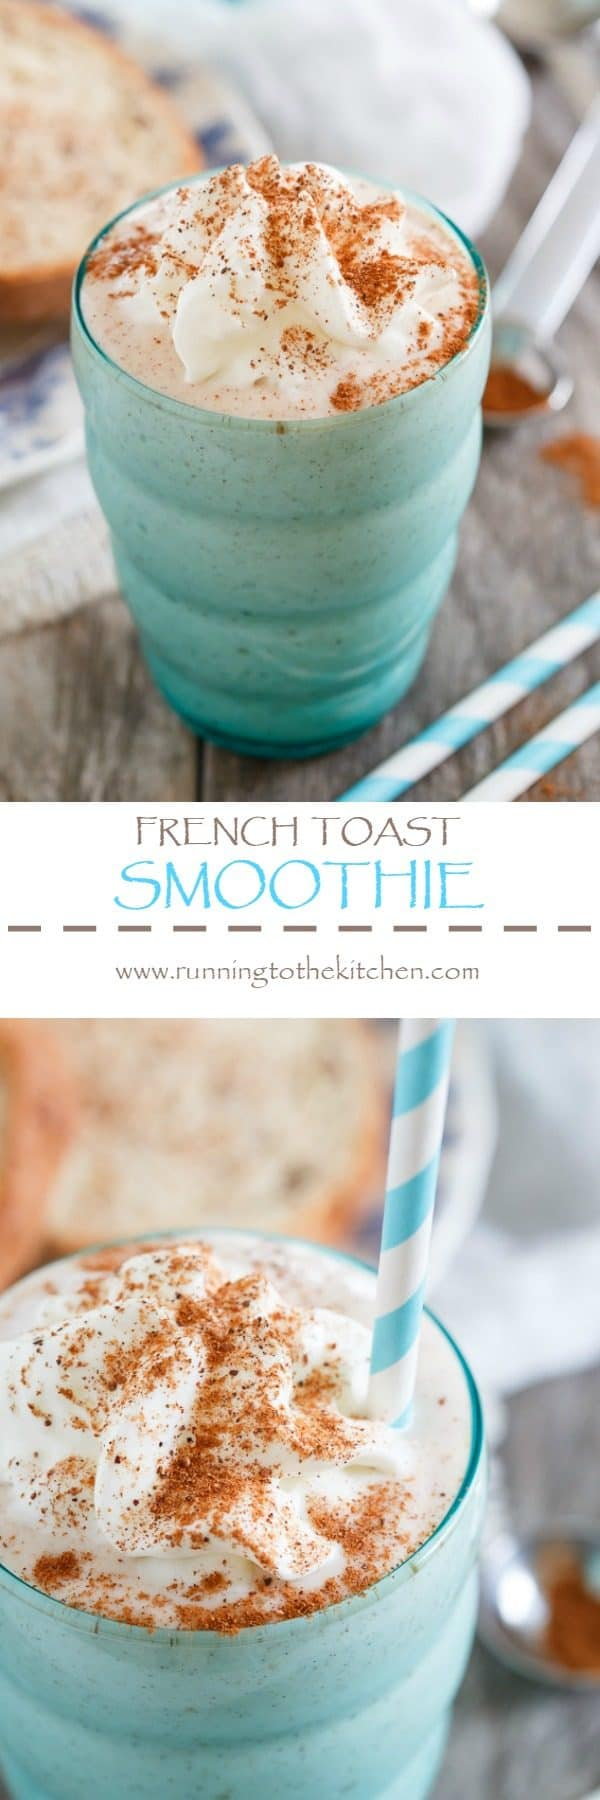 This French toast smoothie is a high protein packed drink that tastes just like the decadent buttery cinnamon breakfast you love.